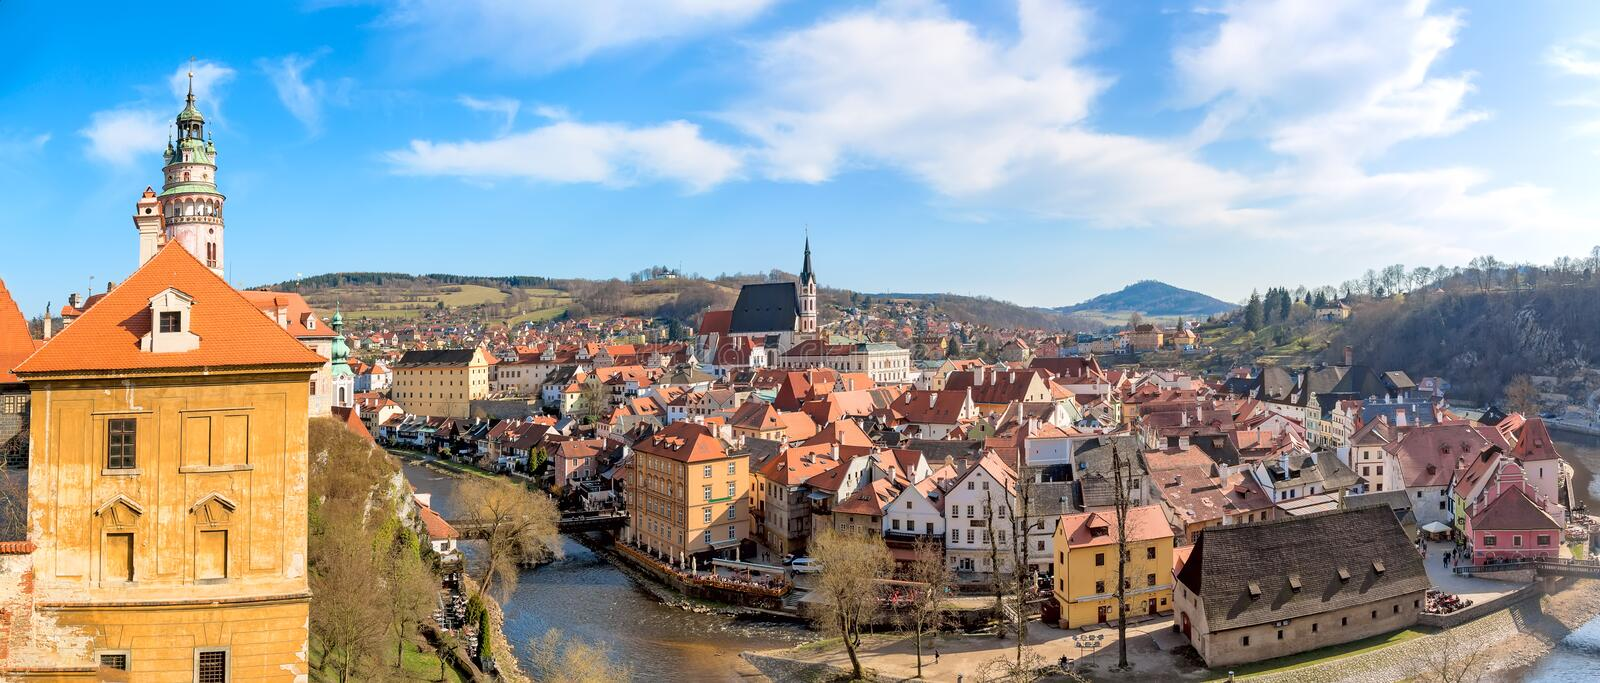 Panorama of the old Town of Cesky Krumlov in South Bohemia, Czech Republic with blue sky. UNESCO World heritage Site and famous pl. Ace for tourism royalty free stock image